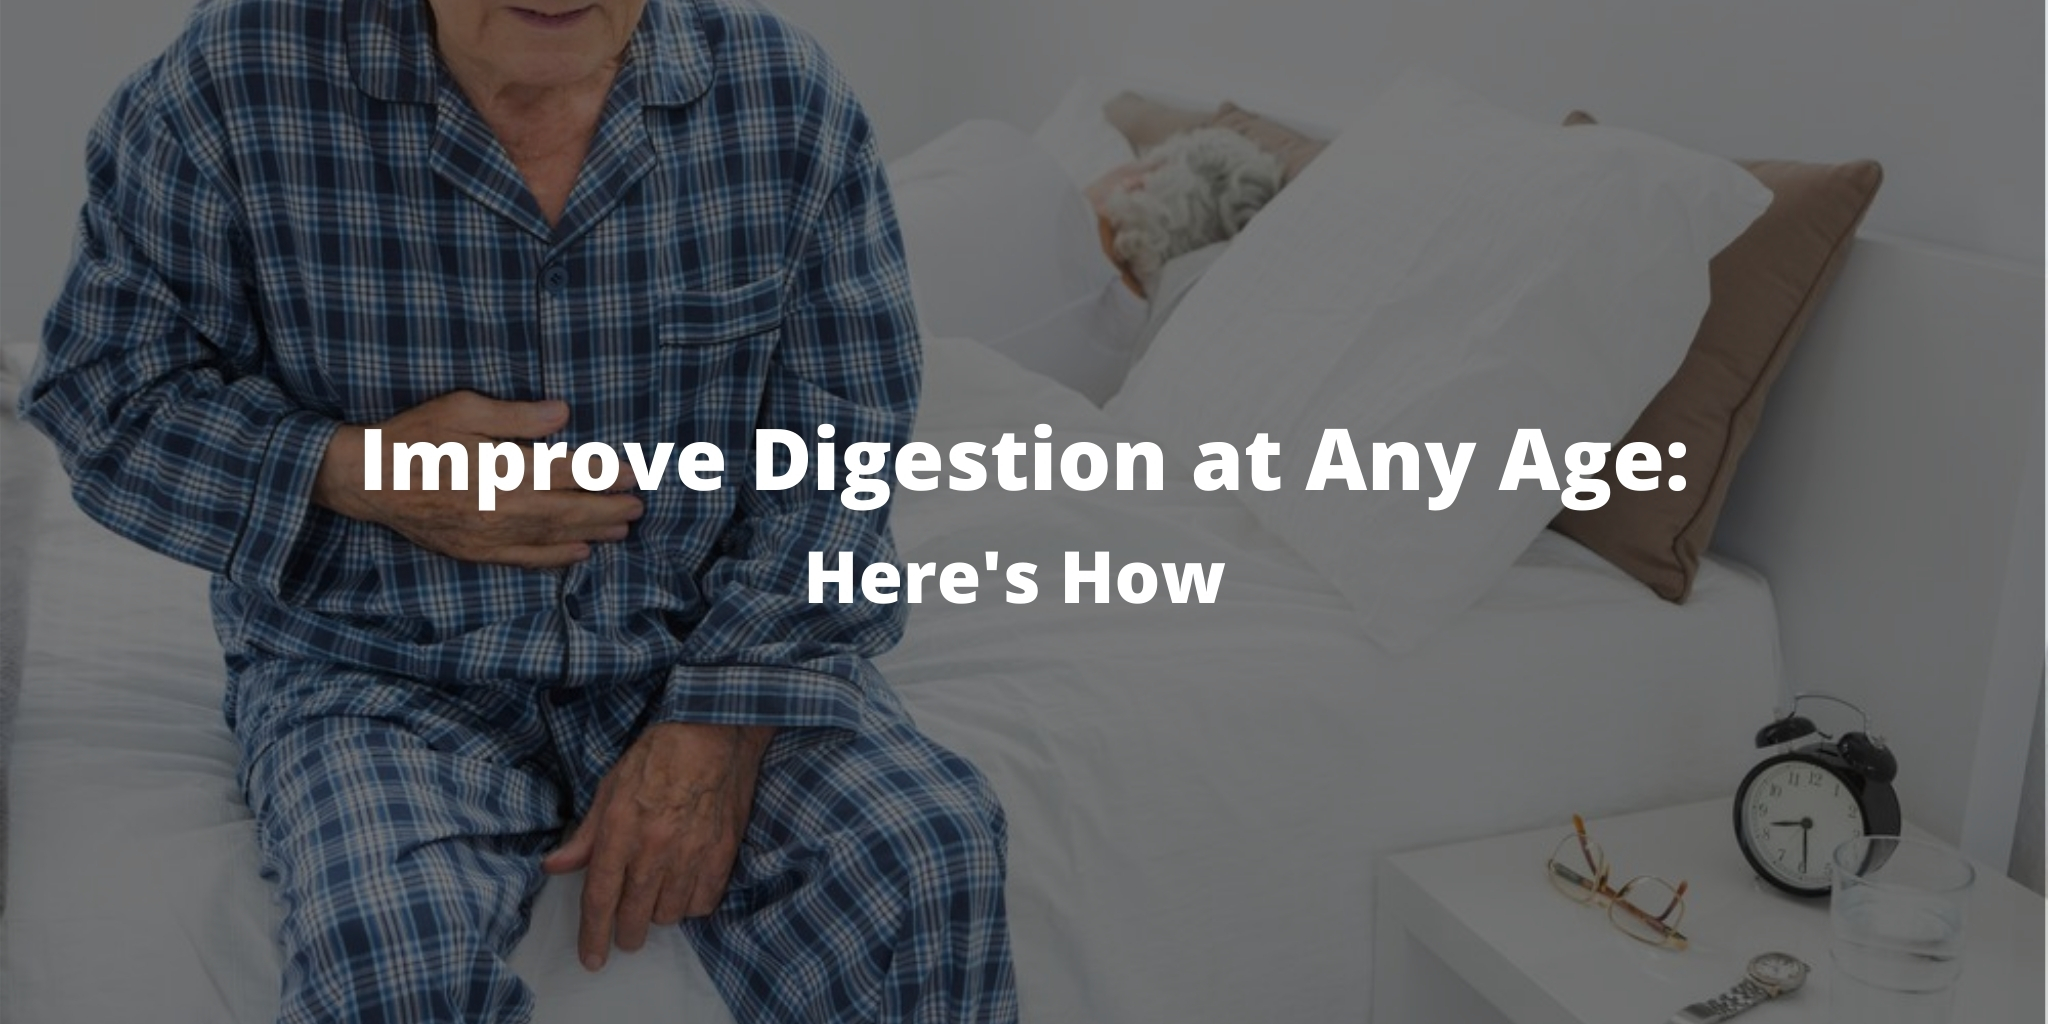 Improve Digestion at Any Age: Here's How